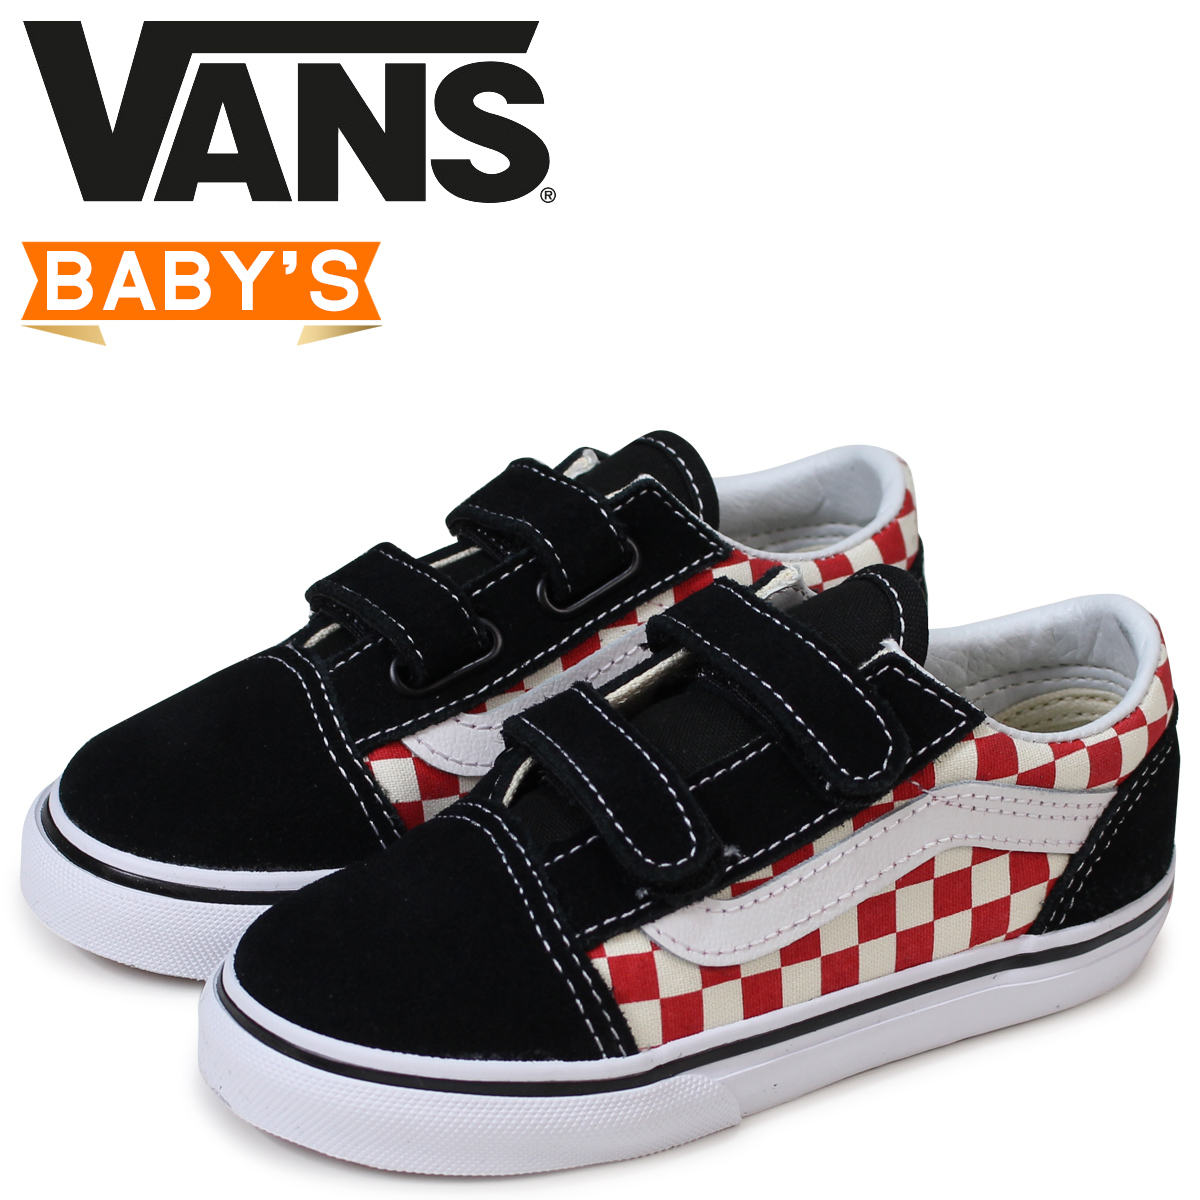 cd0cb1706b1 Vans old school baby sneakers VANS station wagons OLD SKOOL V VN0A344K35U  black  load planned Shinnyu load in reservation product 5 30 containing